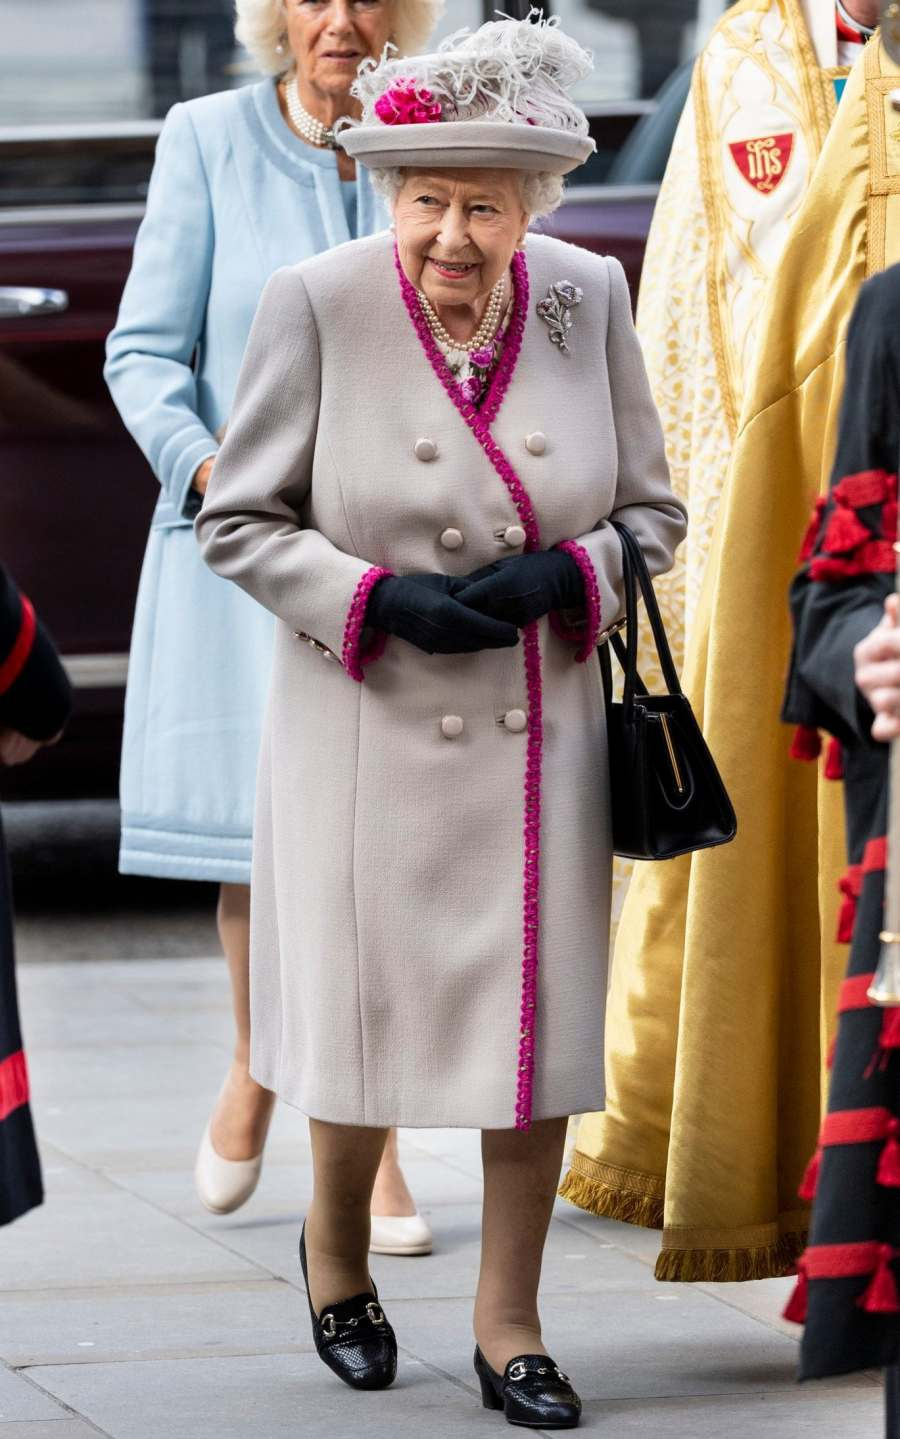 The Queen at the 750th anniversary of Westminster Abbey wearing a cream coat with a pink trim and a feather hat